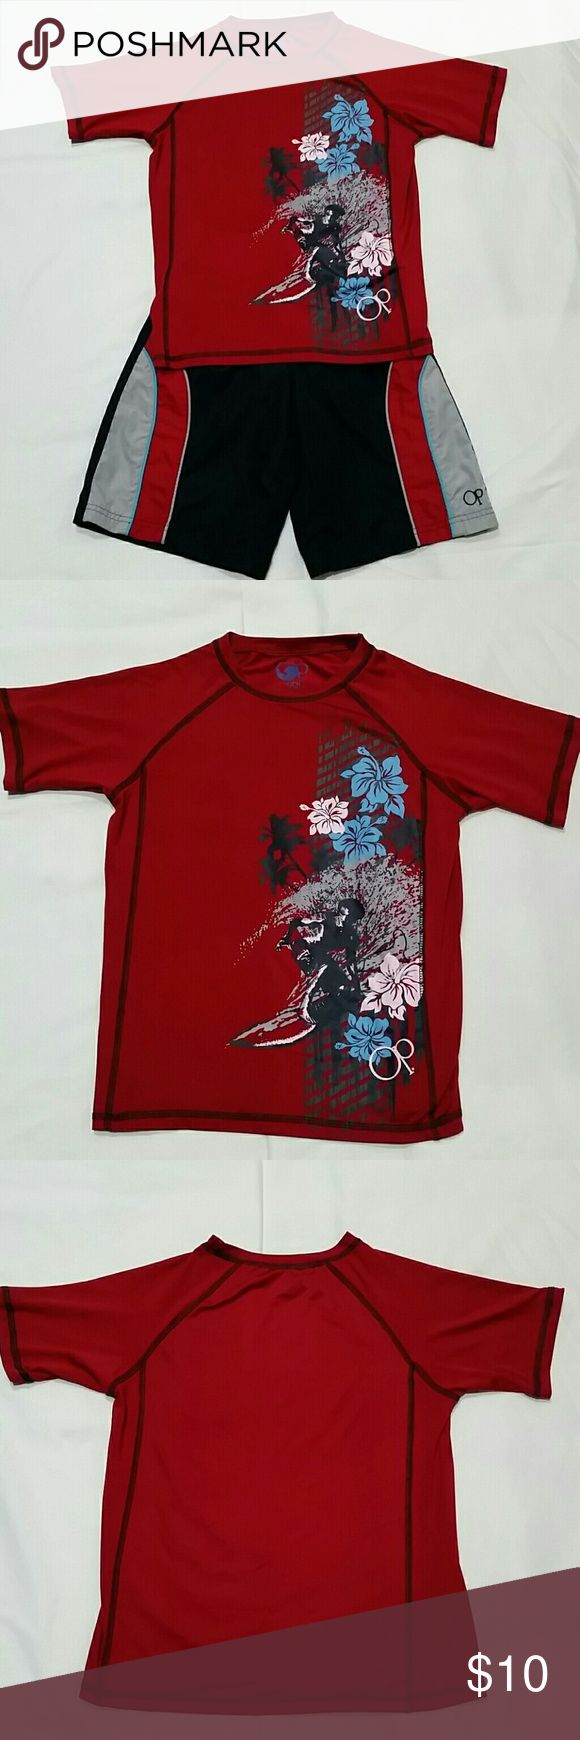 Boys 6/7 Swimsuit Set This surf themed swim suit set by Ocean Pacific is a size Small (6-7). It is in great condition.  Both pieces feature the colors black, grey, blue, and red. The red rash guard features a surfer on the waves surrounded by blue and white hibiscus flowers and black palm trees. The black trunks feature red, blue, and gray stripes and a small OP logo at the bottom. They have an elastic waistband and outer drawstring.  Please see my photos for close-up detail of both pieces…